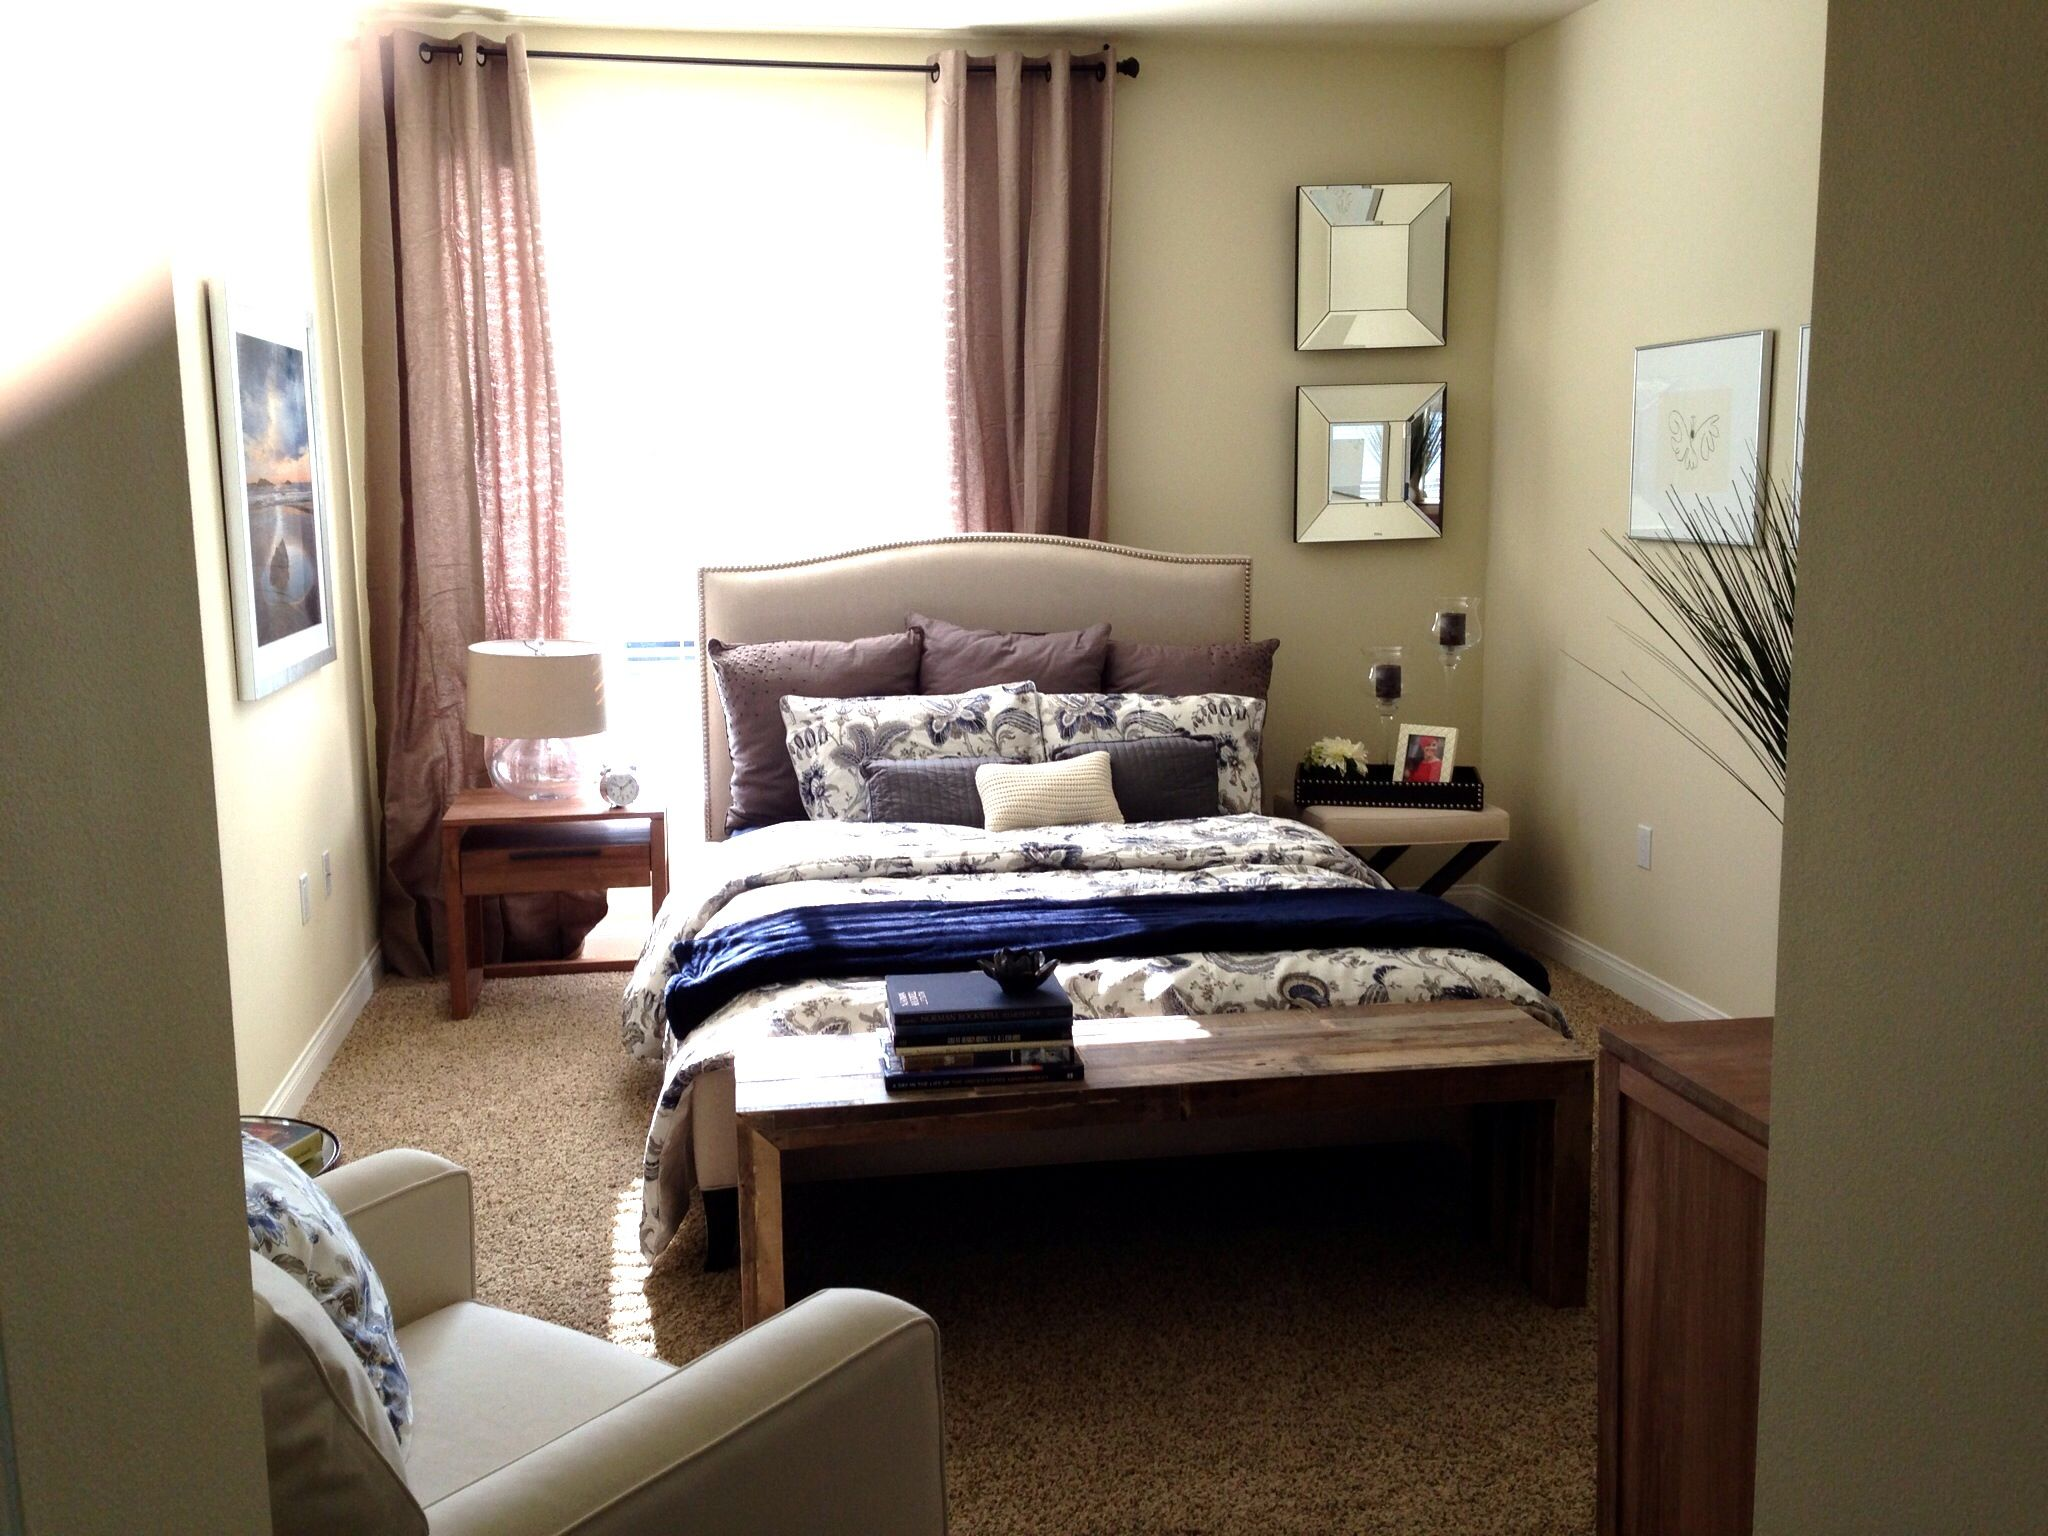 How to put together a bedroom with an asymmetrical window